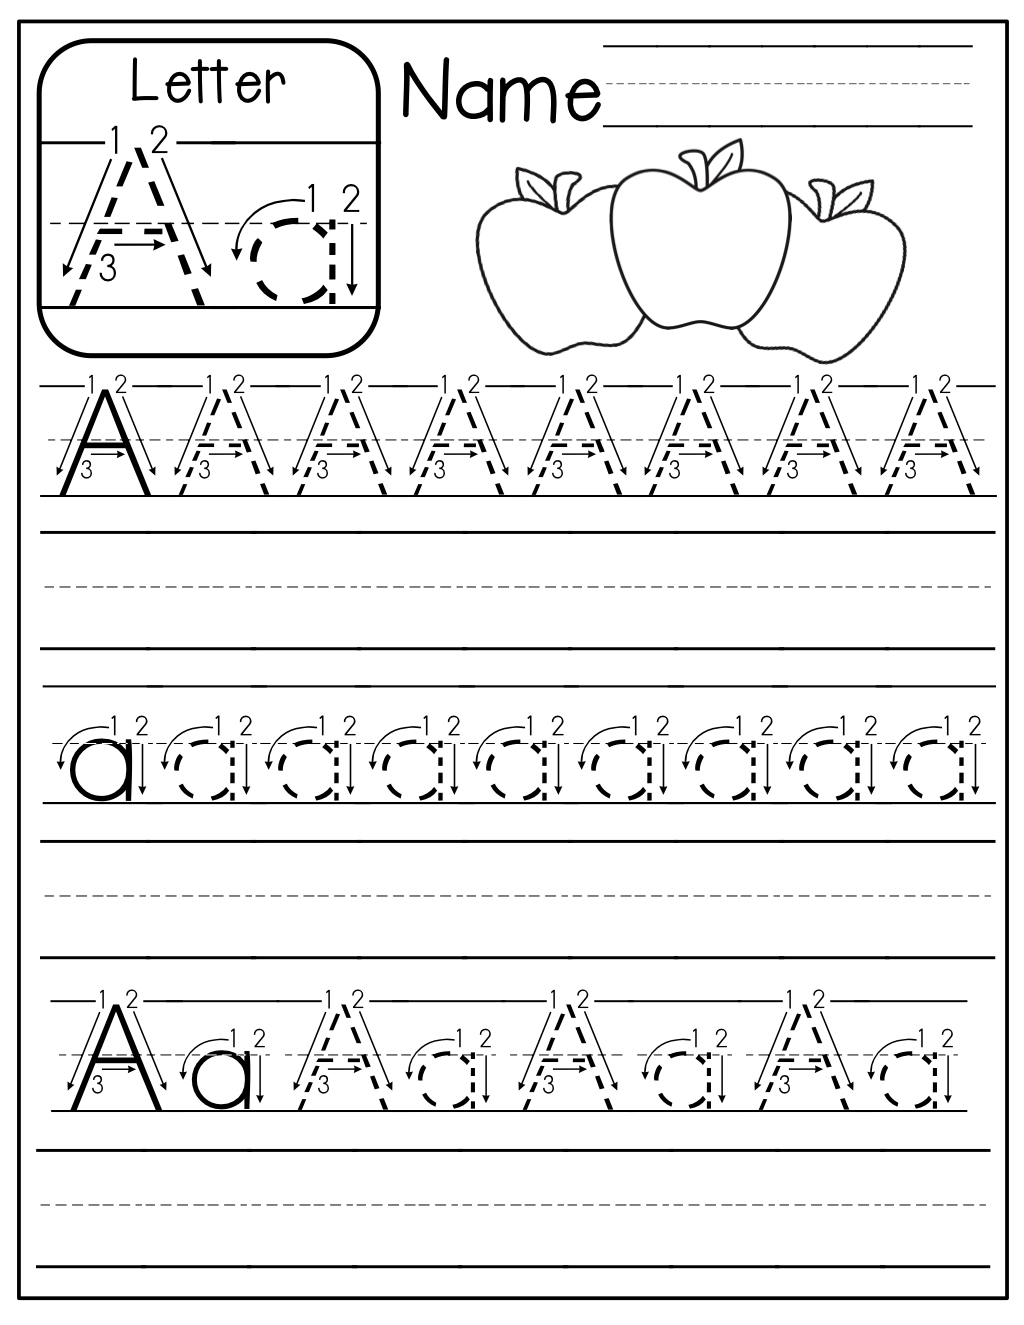 Free…free!! A-Z Handwriting Pages! Just Print Them Out with Alphabet Handwriting Worksheets A To Z Printable